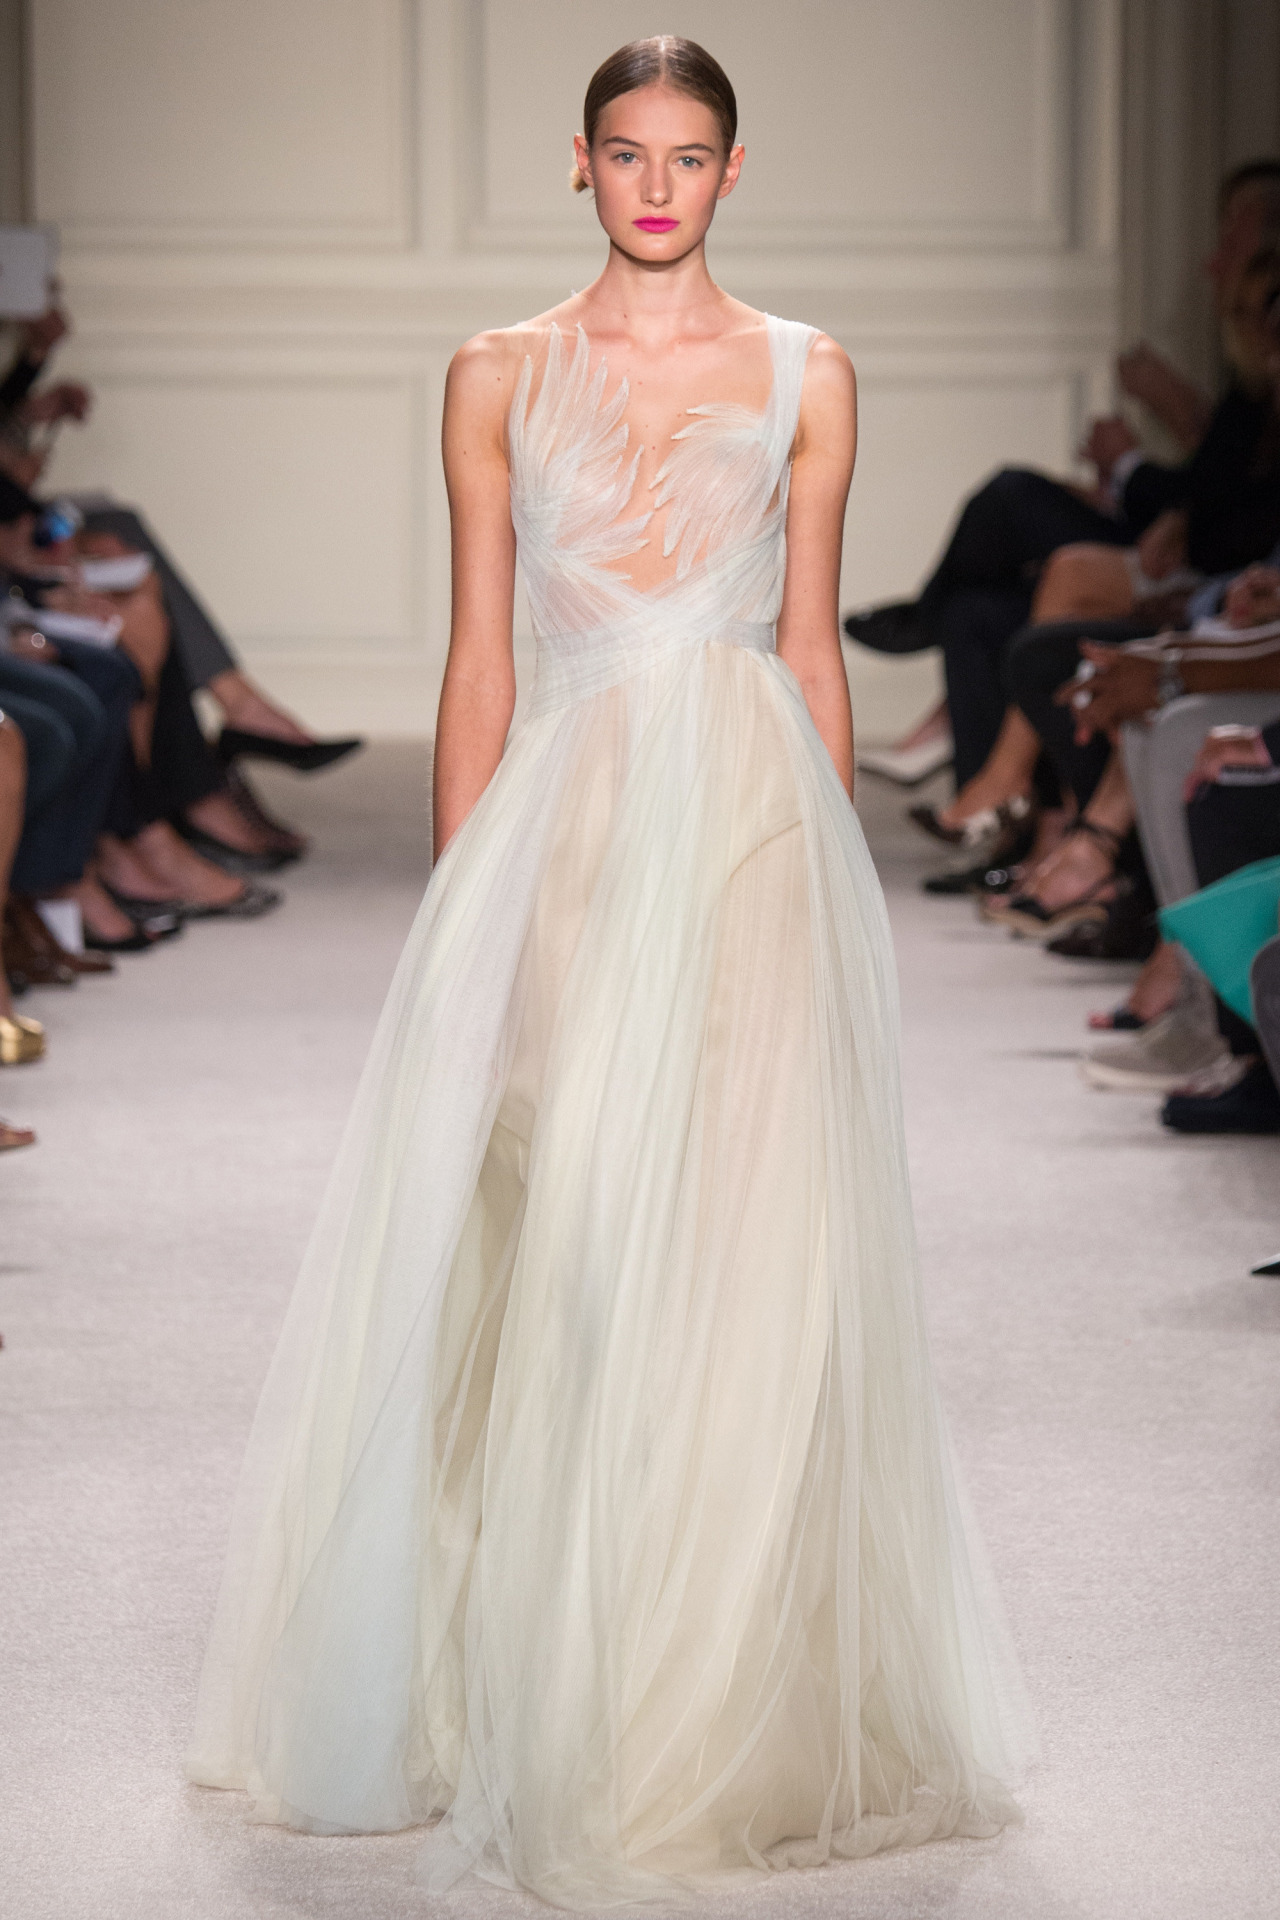 (MARCHESA S/S 2016) Here's everything you need to know about the previous New York, London, Milan and Paris Fashion Week + the S/S 2016 trends you should look out for this upcoming season. Click to read more!